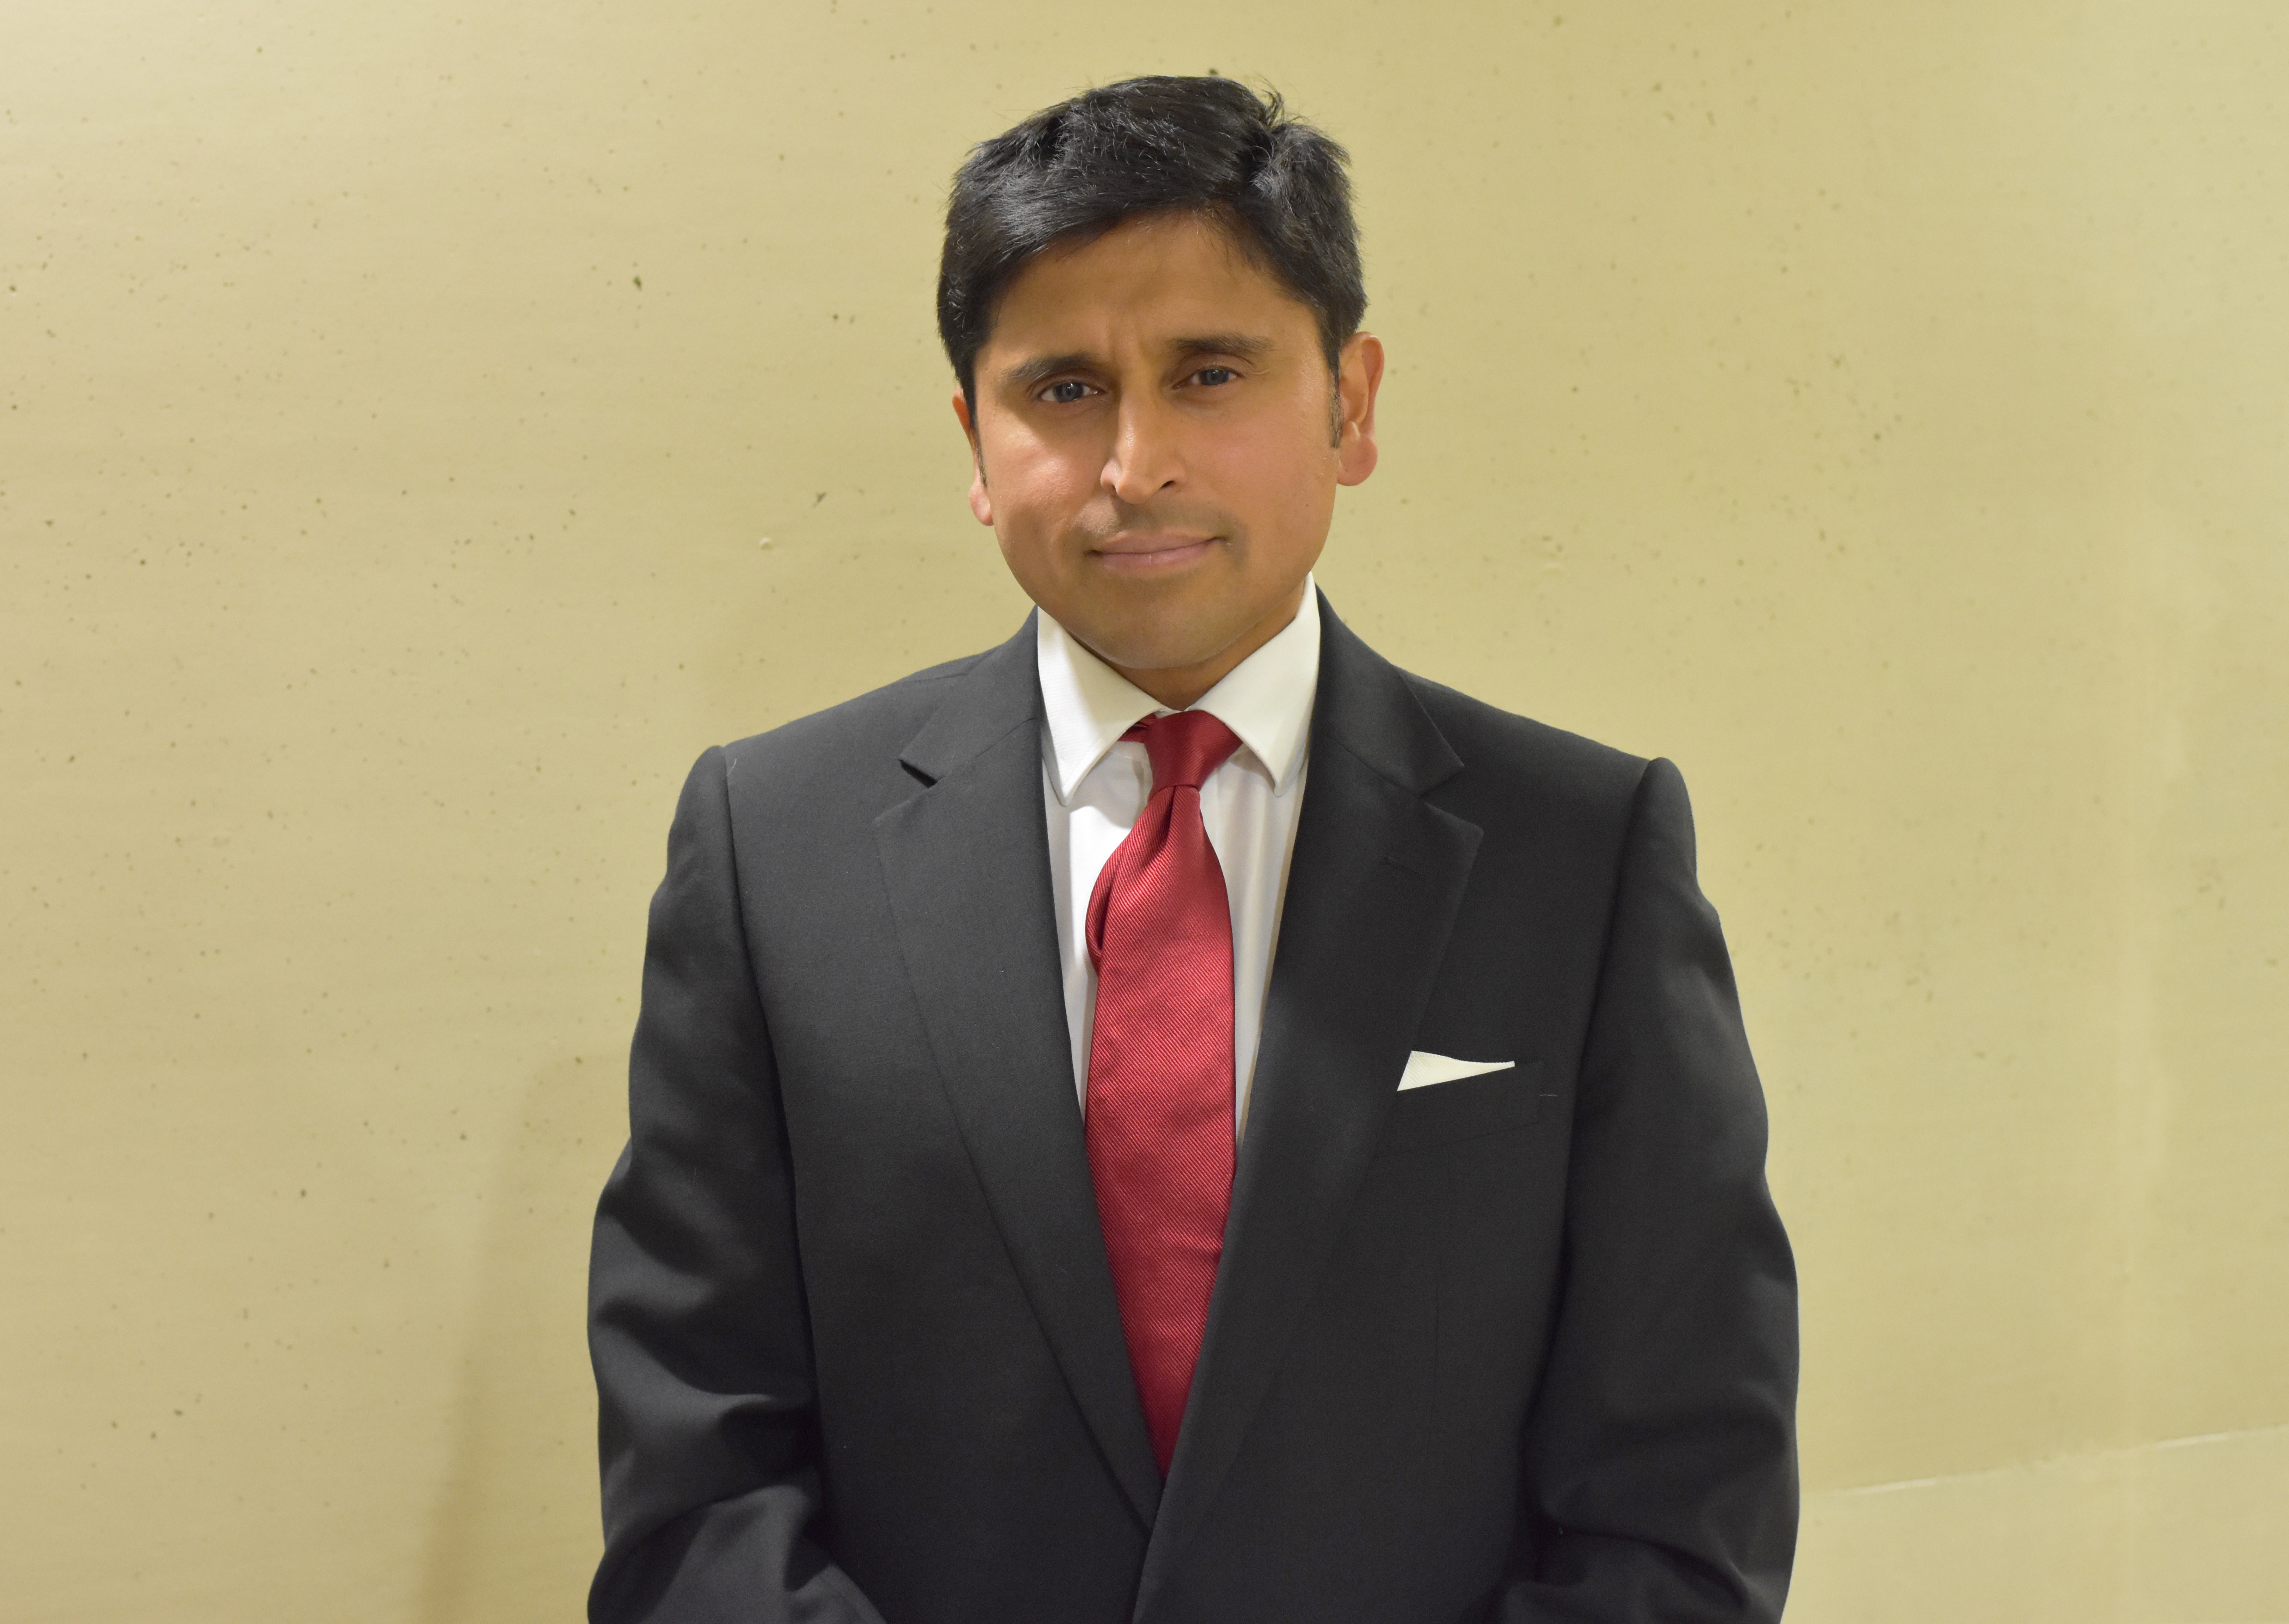 Jaspal Phull is a 